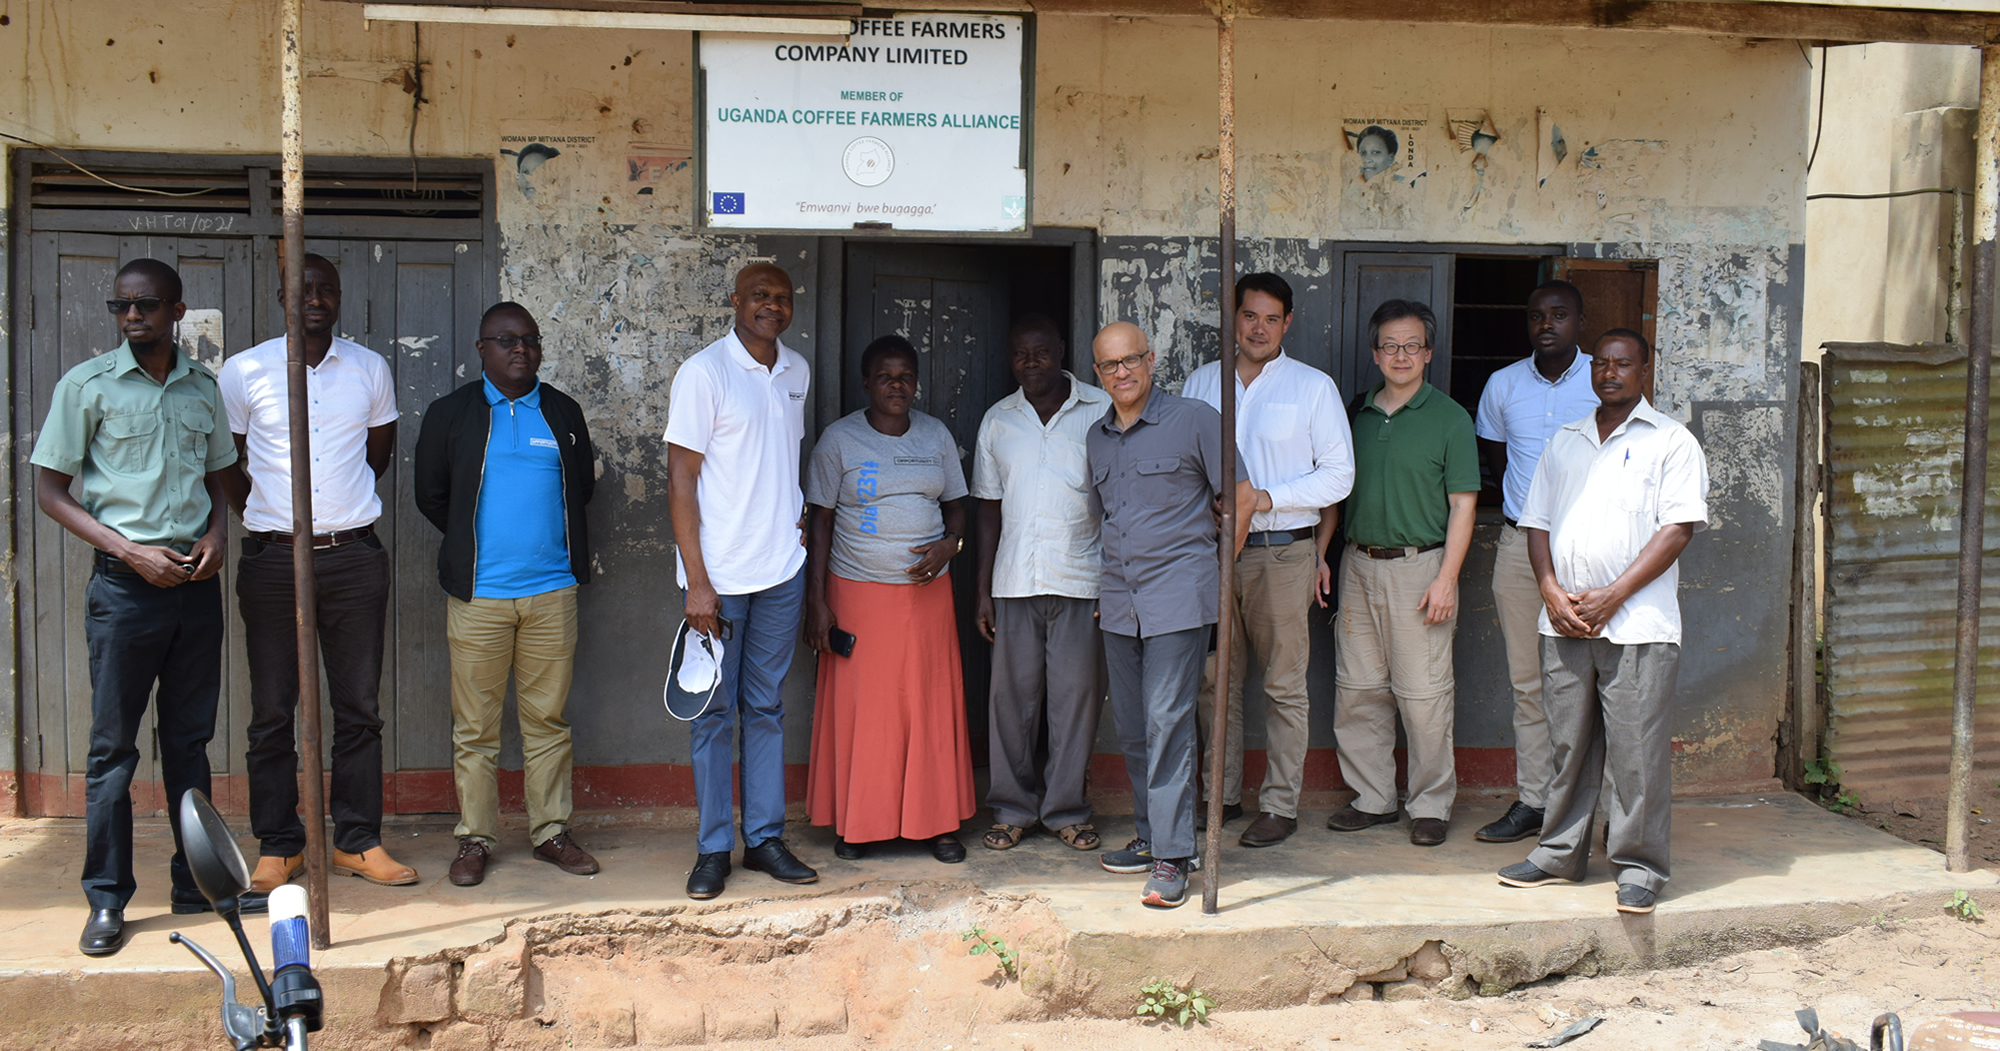 Atul Tandon working with Uganda coffee farmers